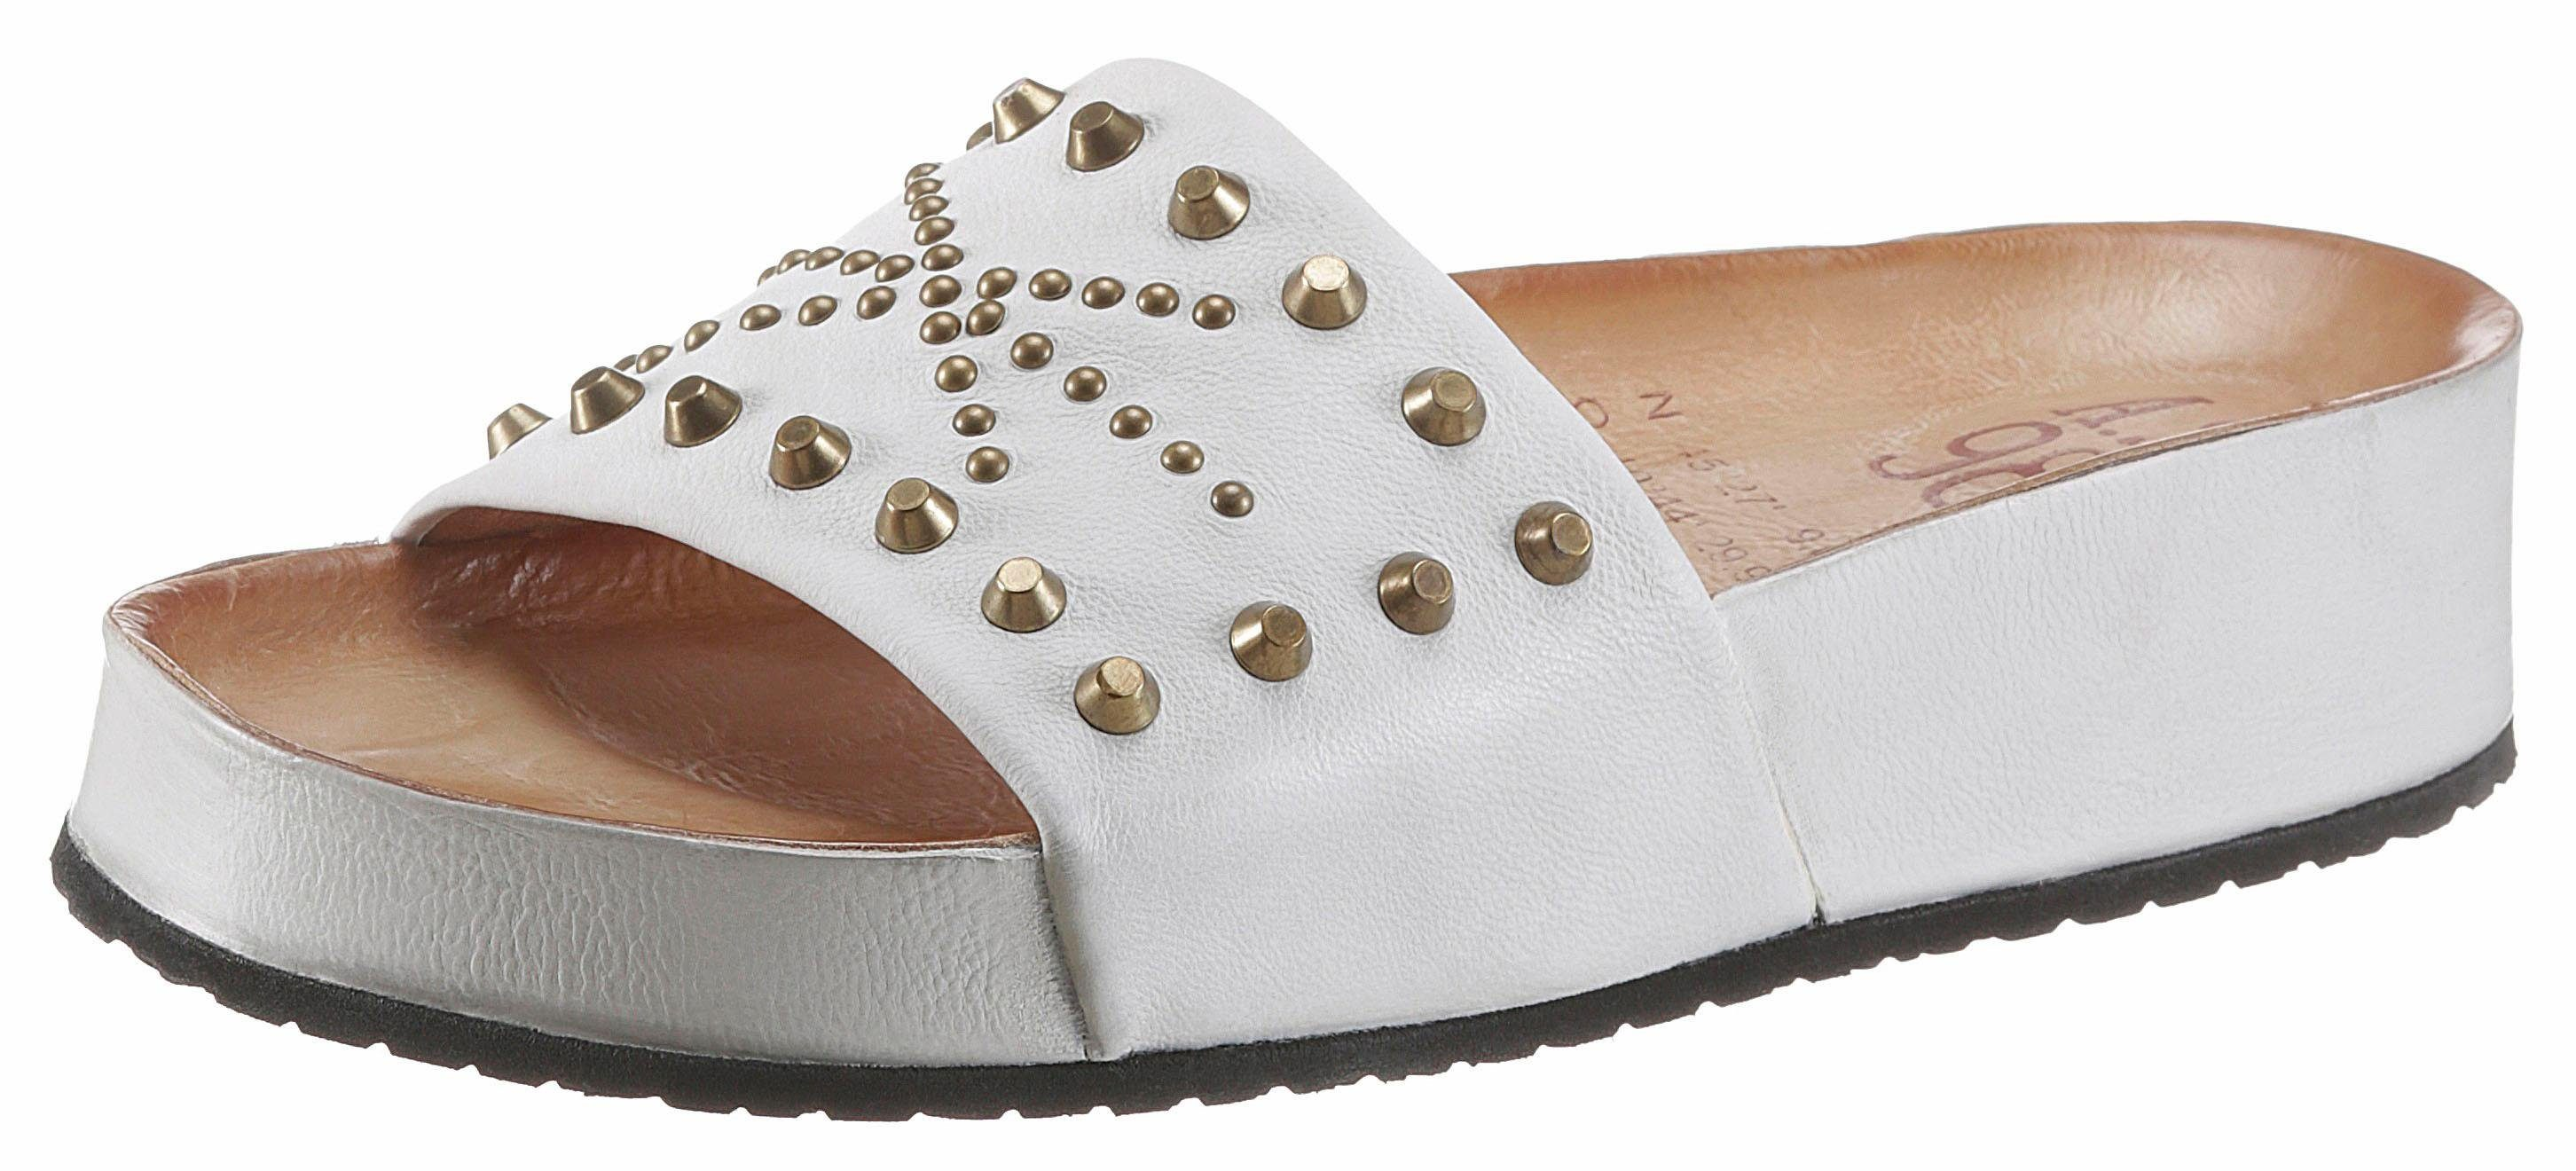 AS98 Pantolette, mit angesagter Plateausohle  offwhite